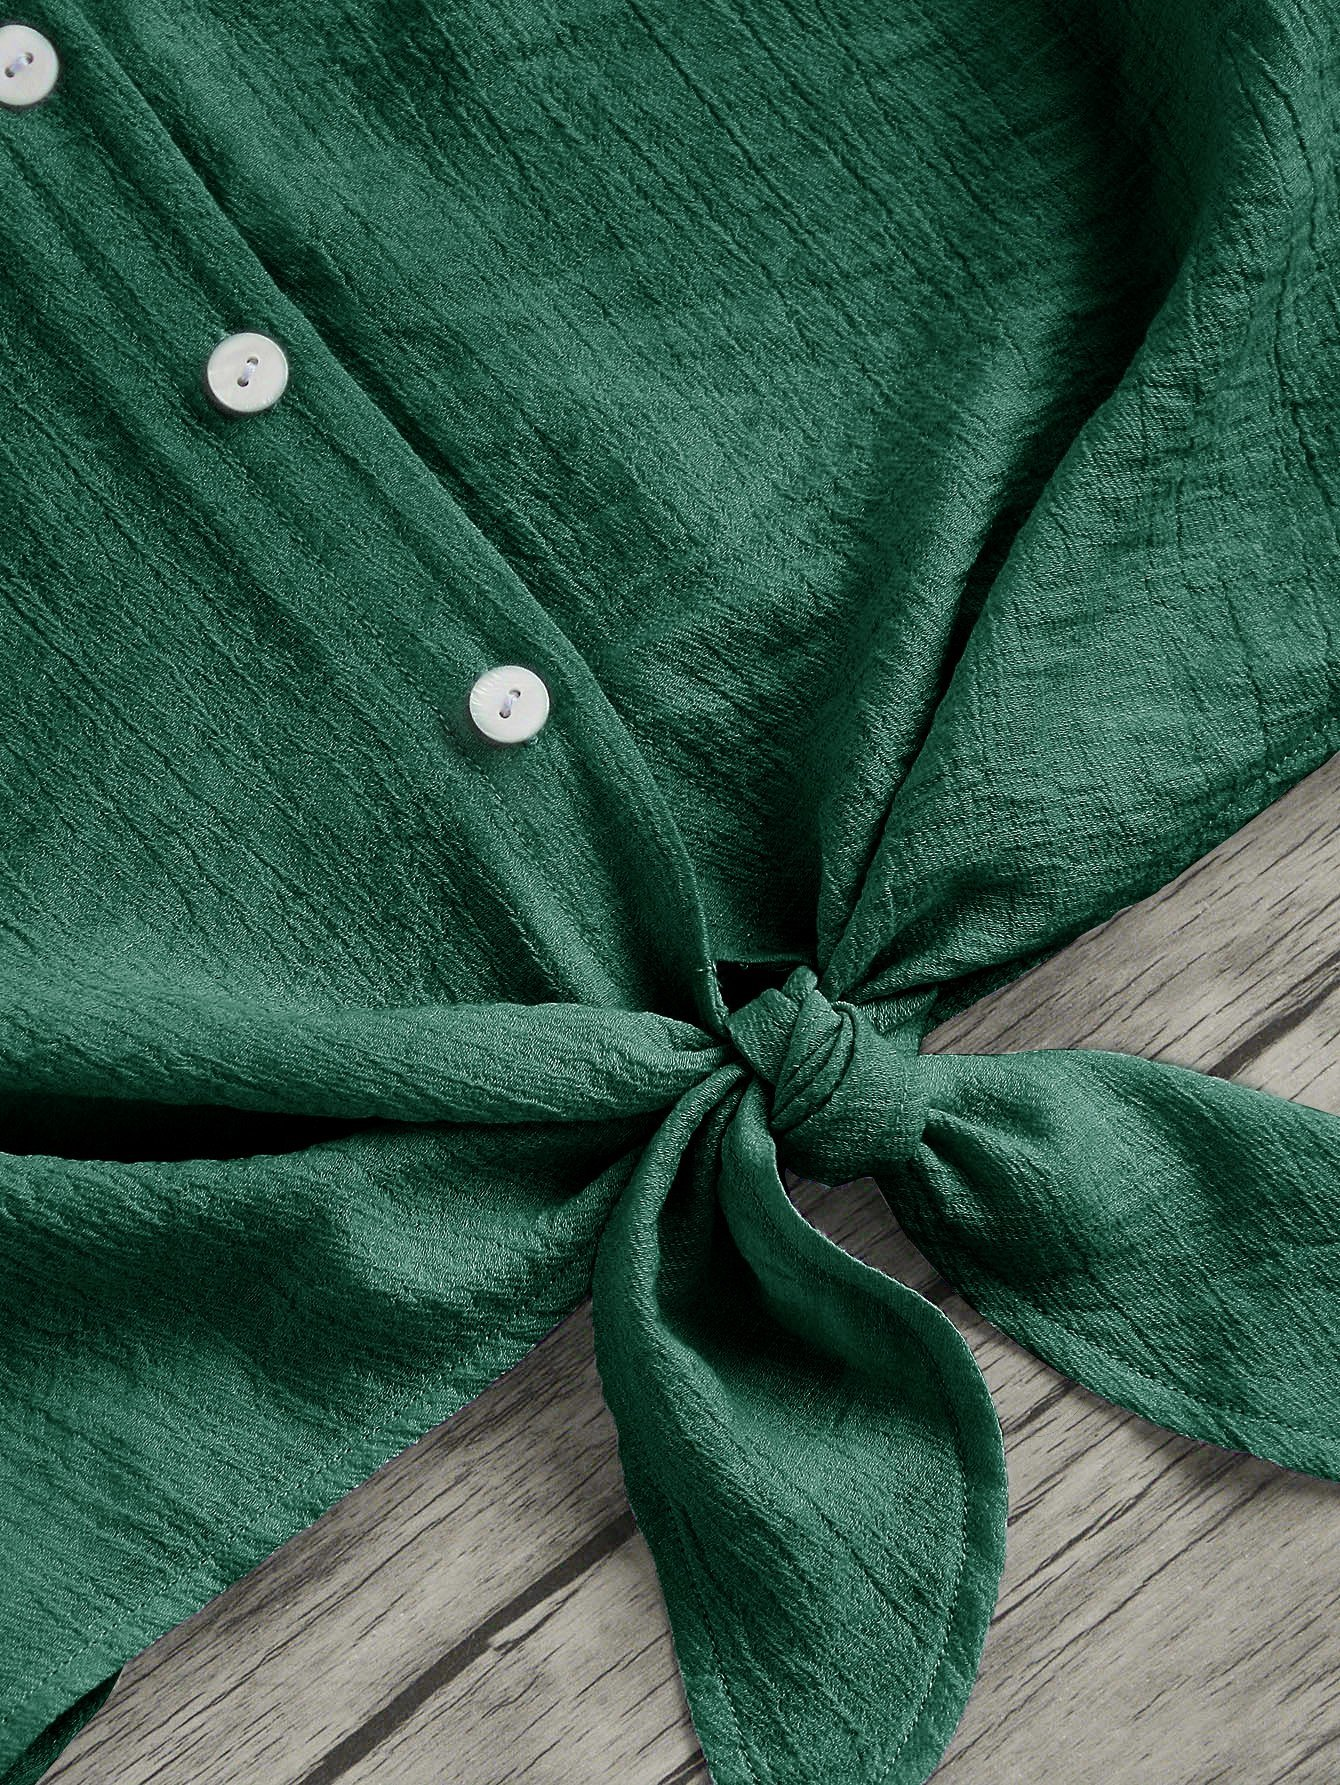 MakeMeChic Women's Casual V Neck Button Seft Tie Front Crop Cami Tops Camisole Green S by MakeMeChic (Image #3)